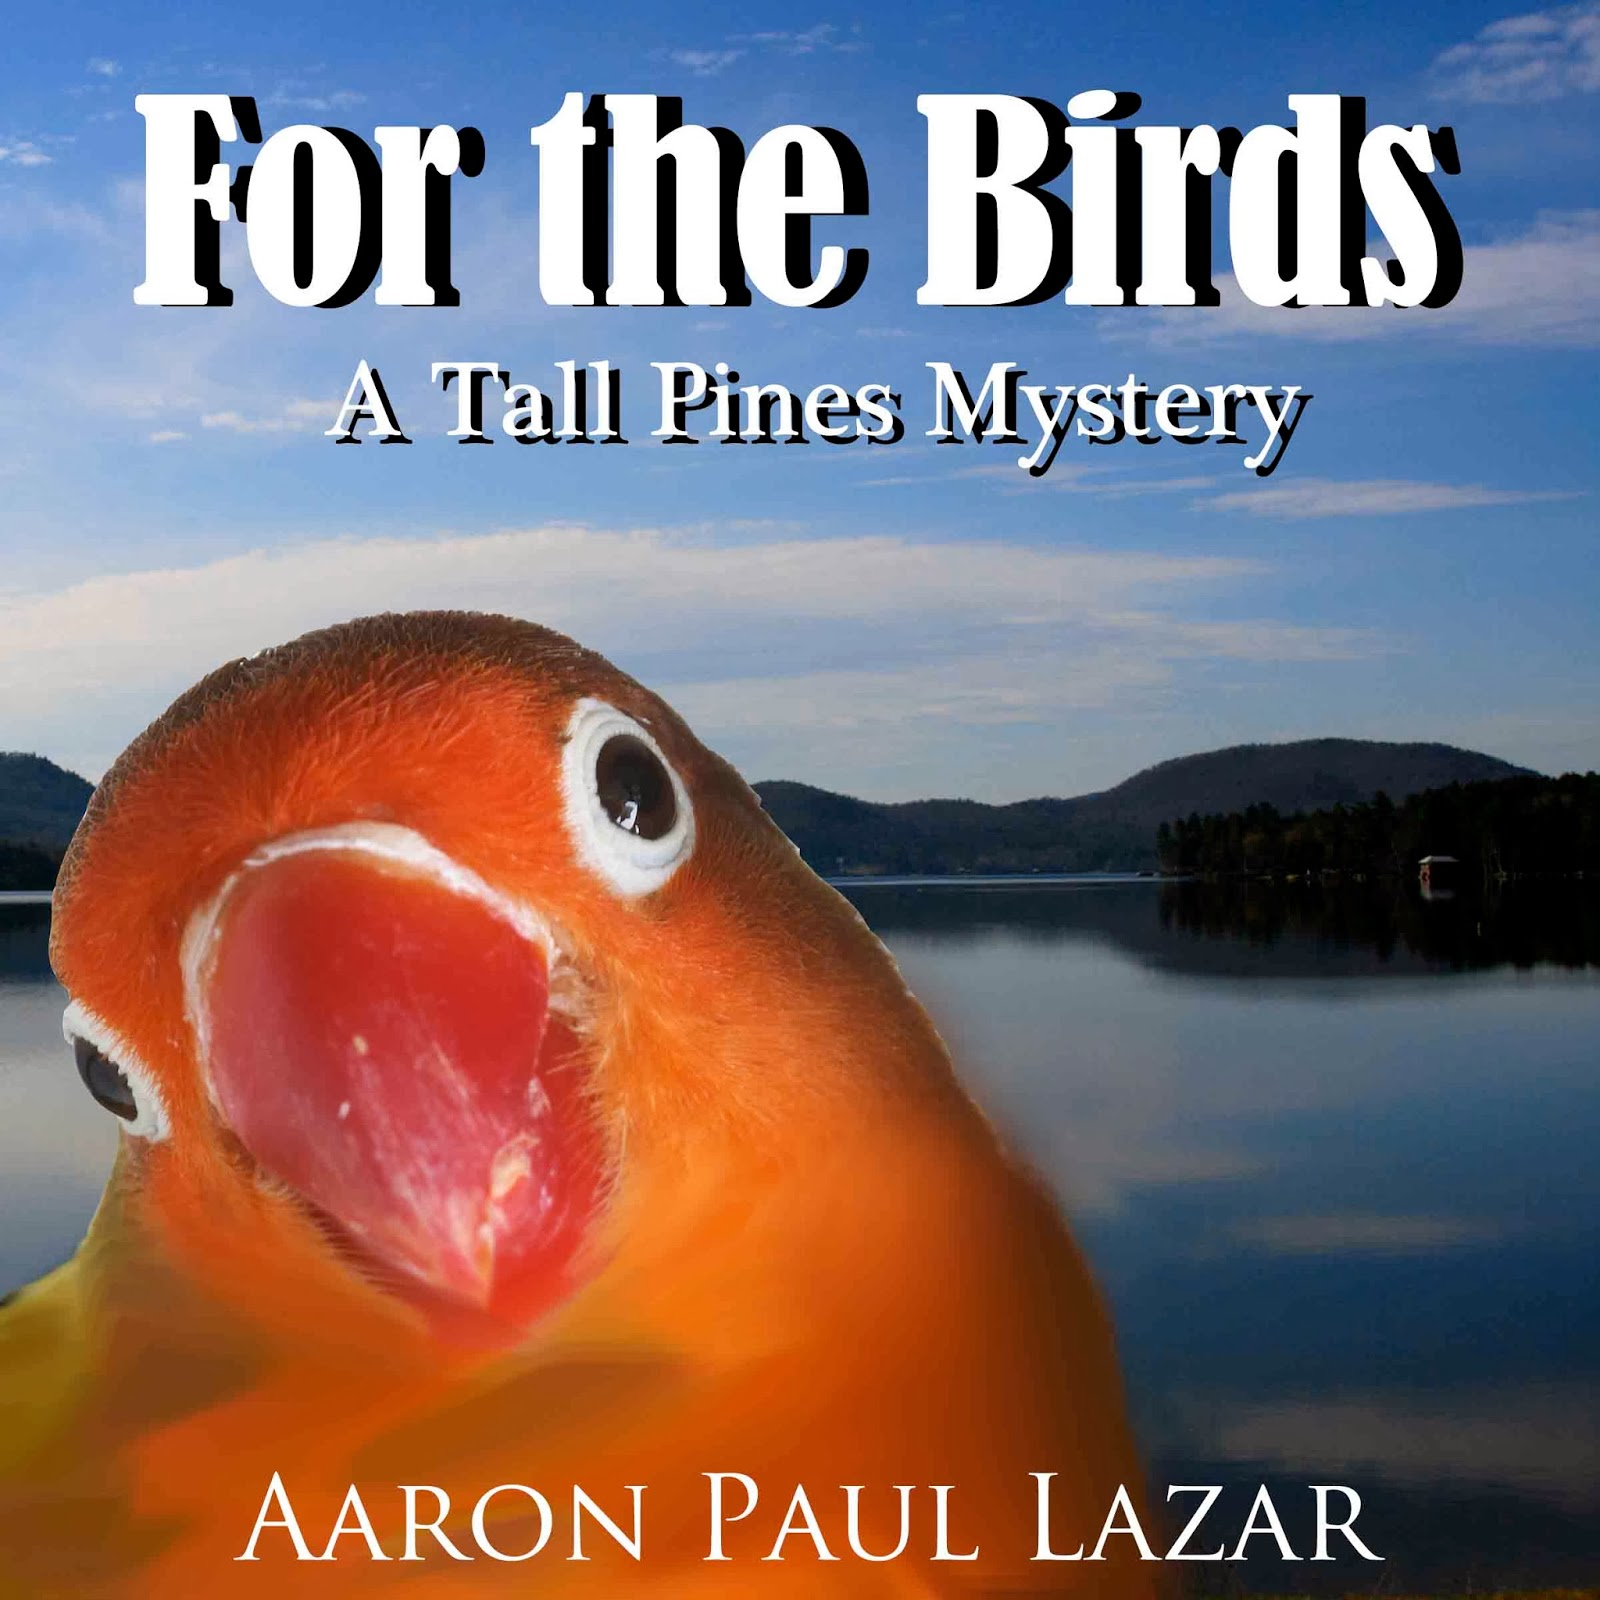 http://www.audible.com/pd/Fiction/For-the-Birds-A-Tall-Pines-Mystery-Audiobook/B00DQ9WCYO/ref=a_search_c4_1_1_srTtl?qid=1390133926&sr=1-1